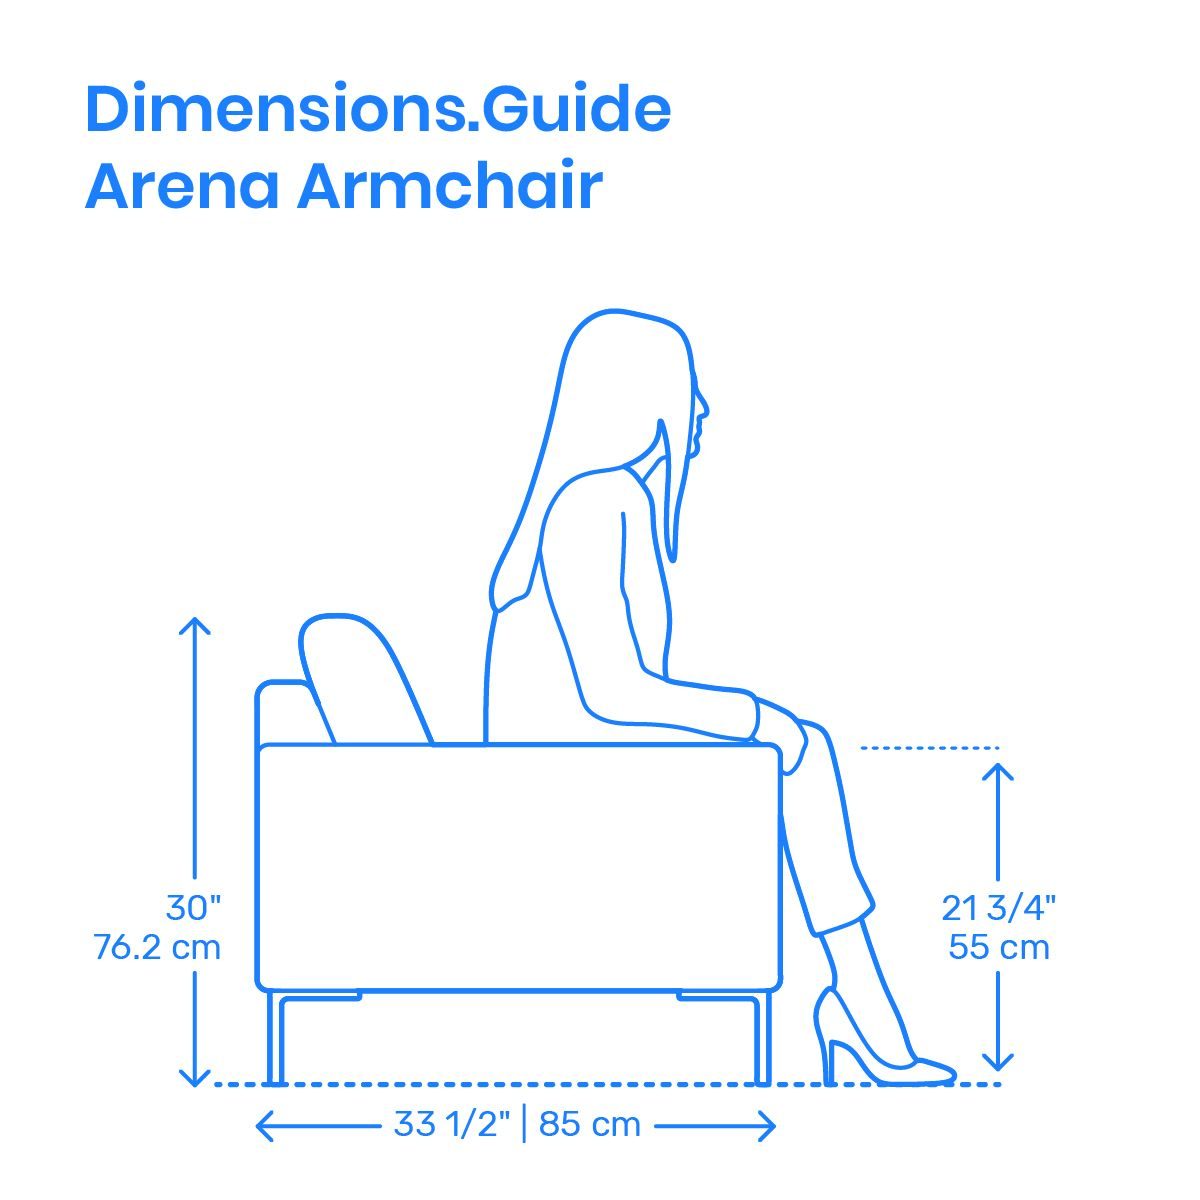 Arena Armchair Scale Furniture Details Design Chair Design Wooden How To Plan